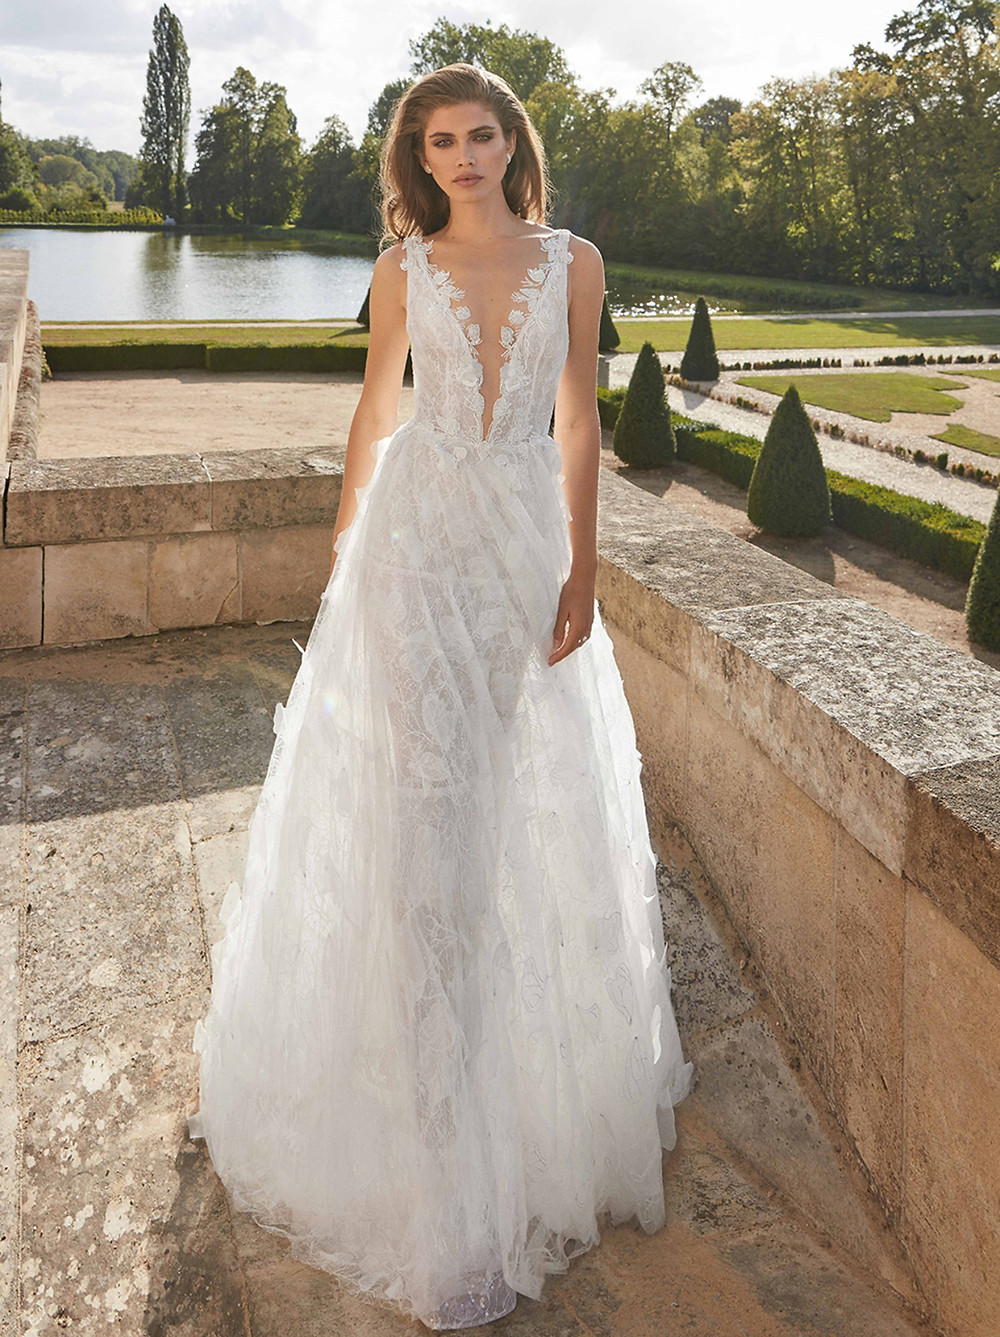 Romantic 3D organza and tulle petals and all-over embroidery bring this multi-layered A-line wedding gown with a plunging neckline to new heights. A sheer, structured petticoat falls from the waist with layers of lace, shimmering tulle, and delicate silk tulle embellishments